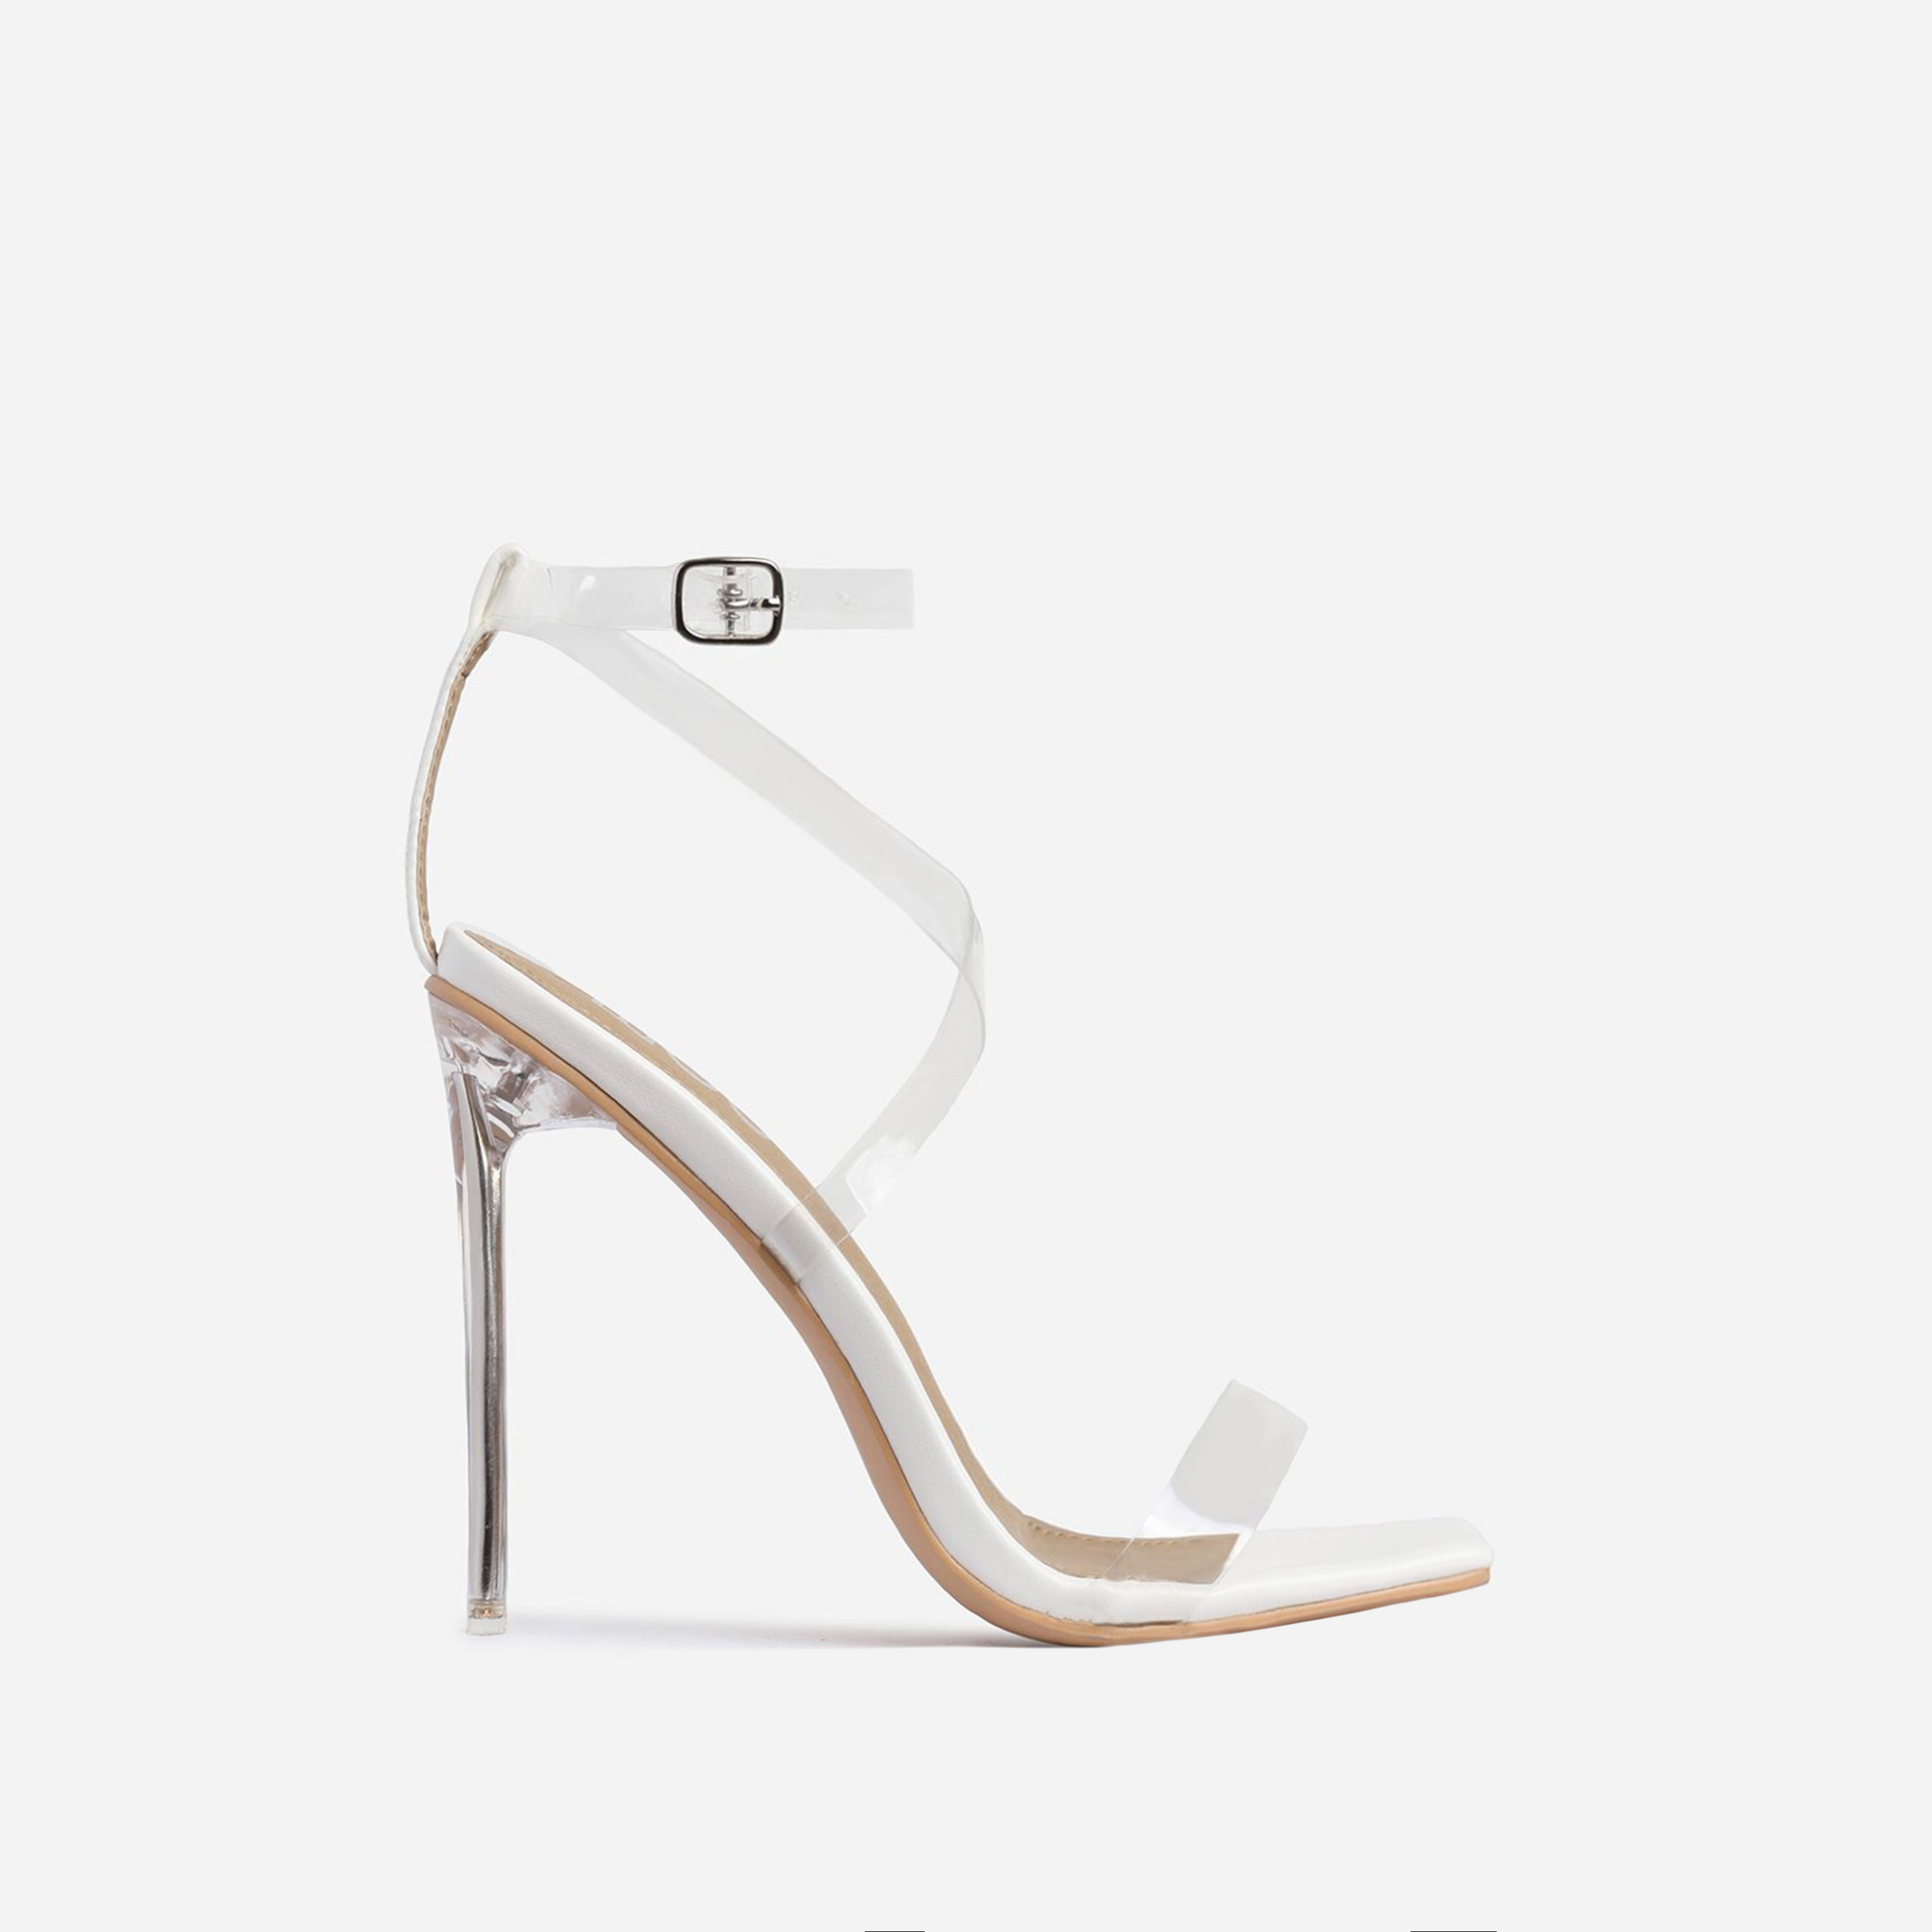 Lance Square Toe Barely There Clear Perspex Heel In White Faux Leather